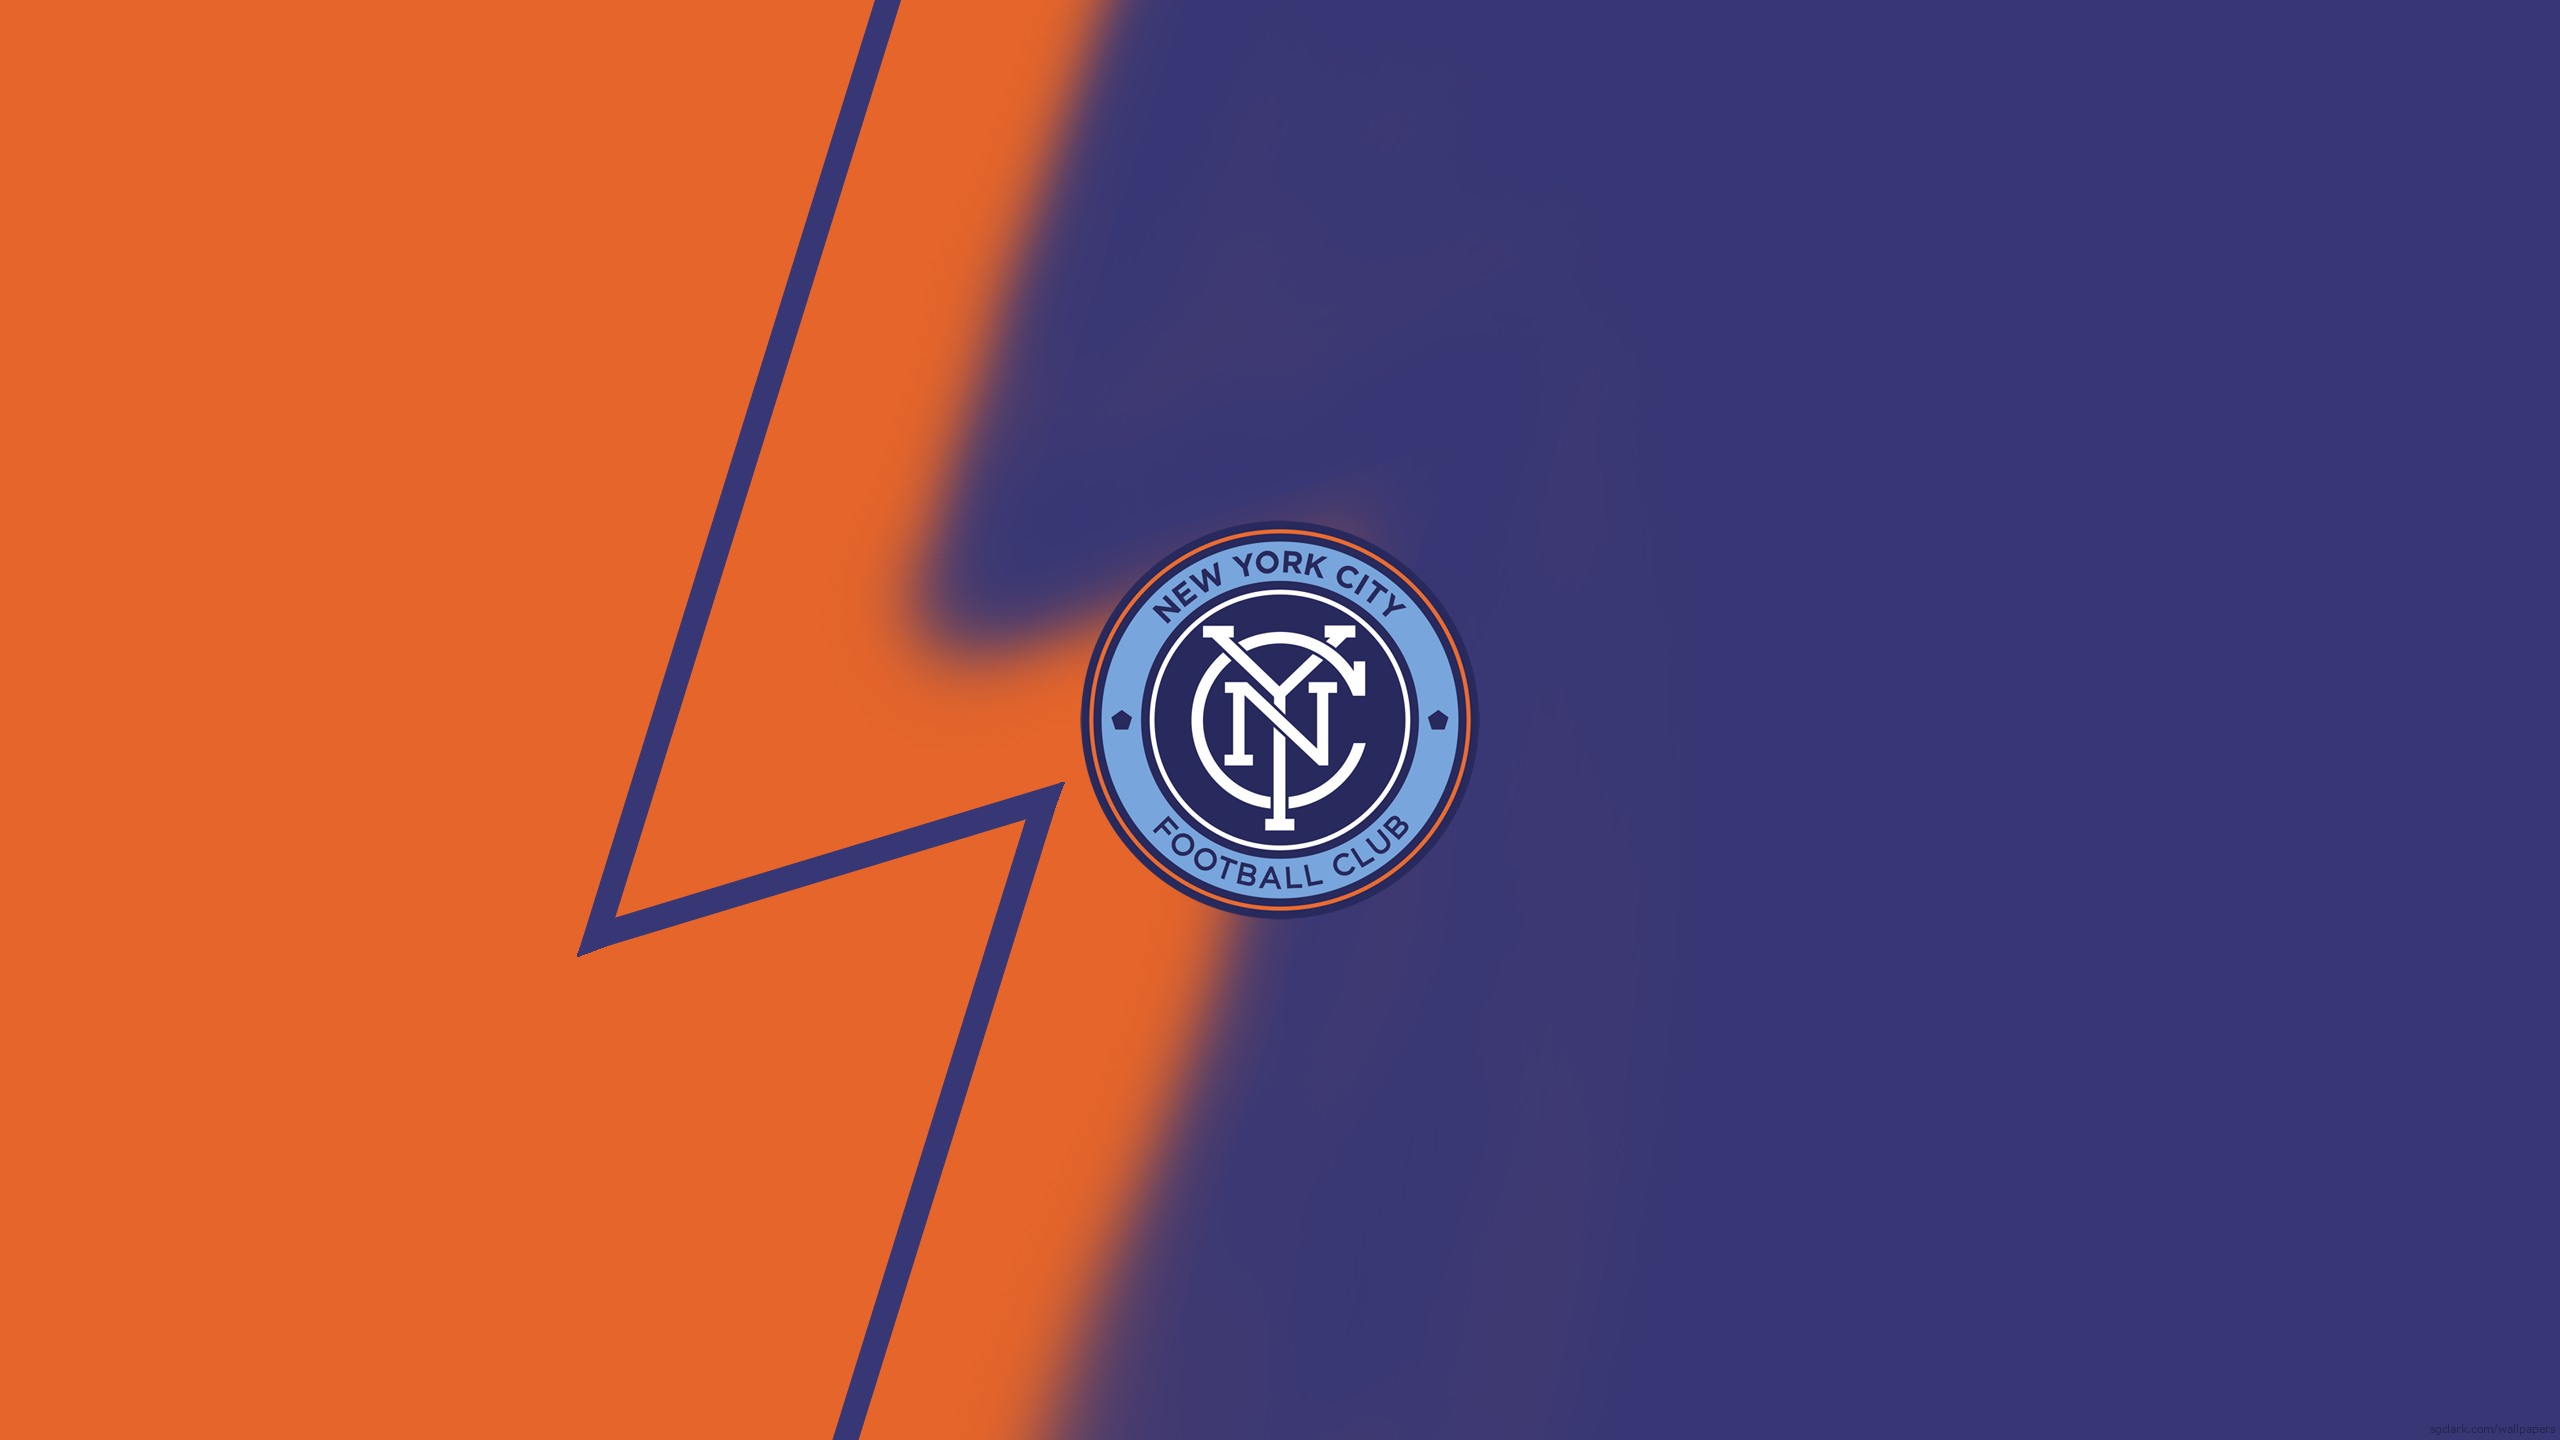 NYC Football Club (Away)